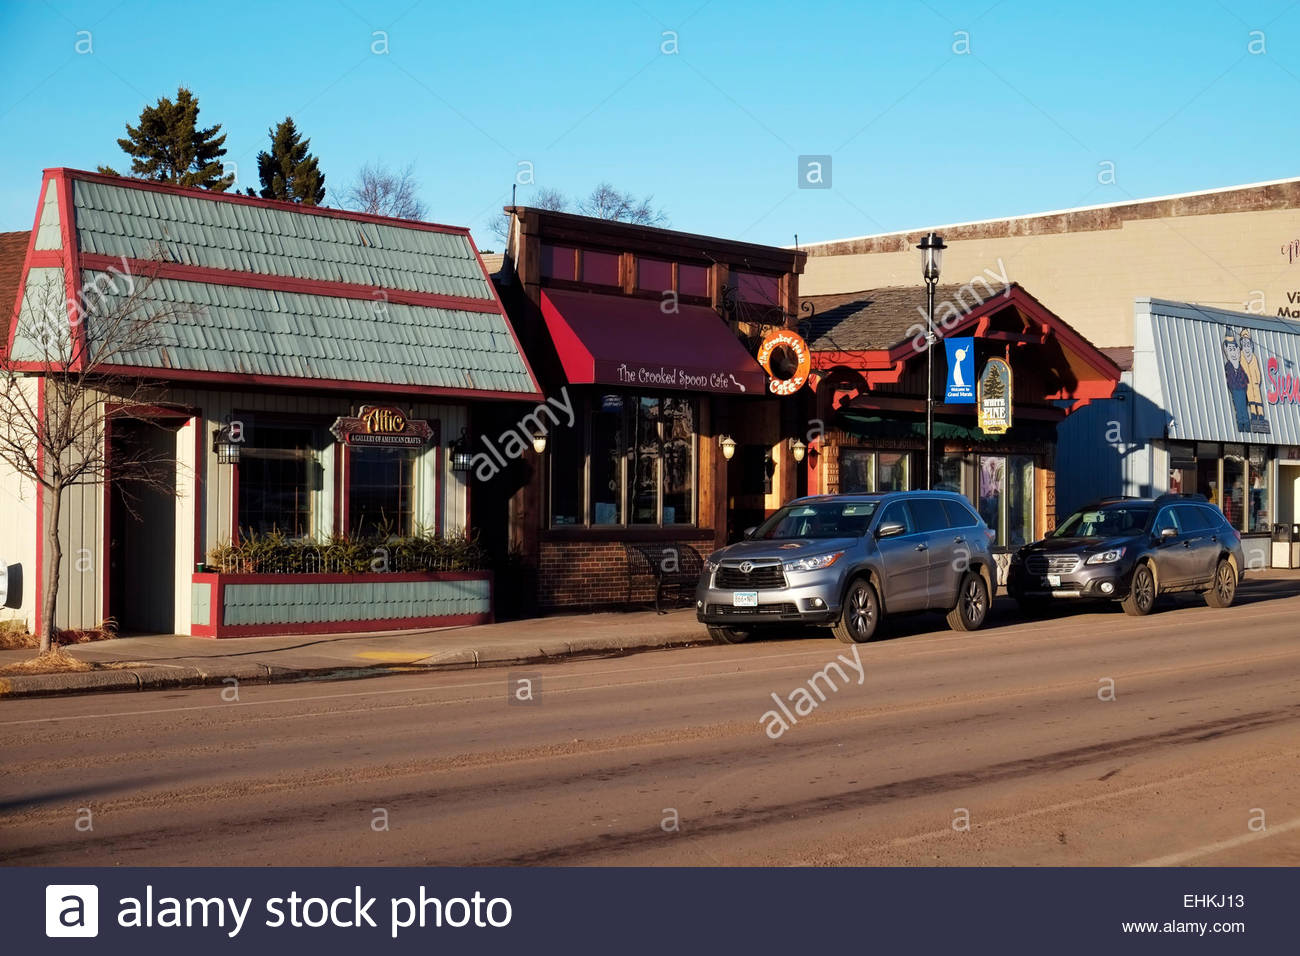 The Crooked Spoon Café, Attic arts and crafts gallery and other businesses in Grand Marais, Minnesota. - Stock Image